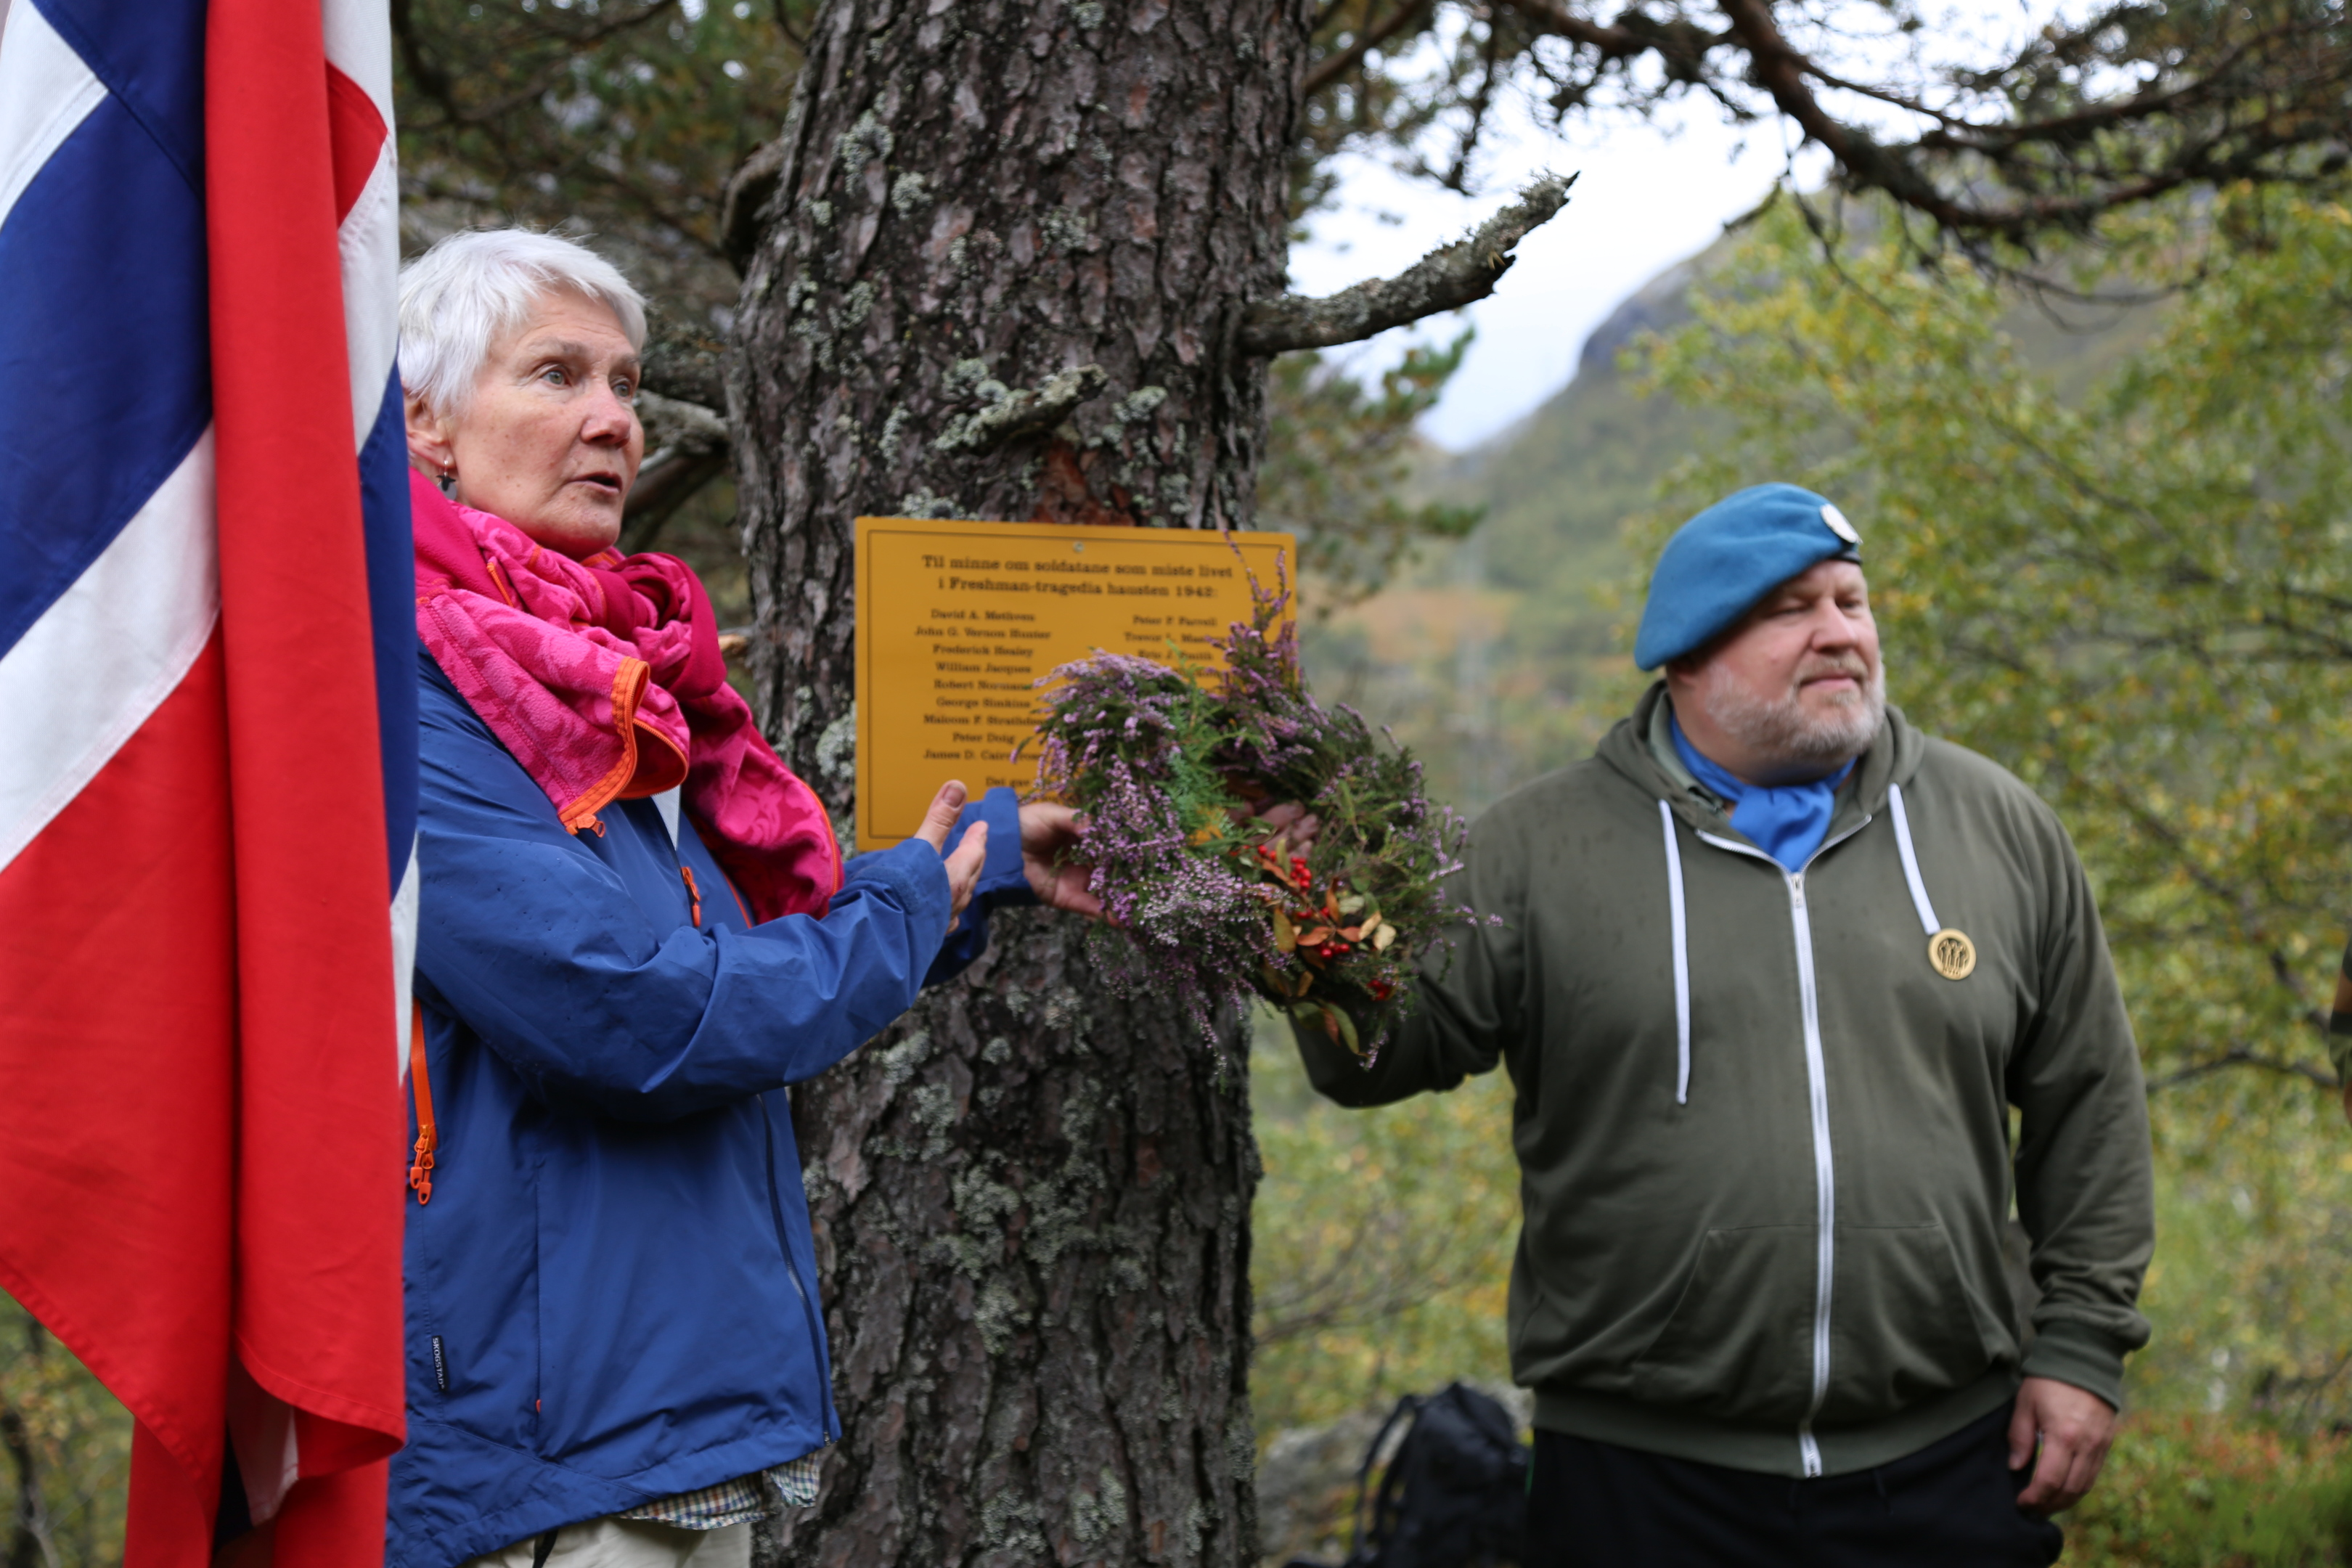 Tora Liv, a well-known local historian, unveiled the plaque at the site alongside a Norwegian veteran